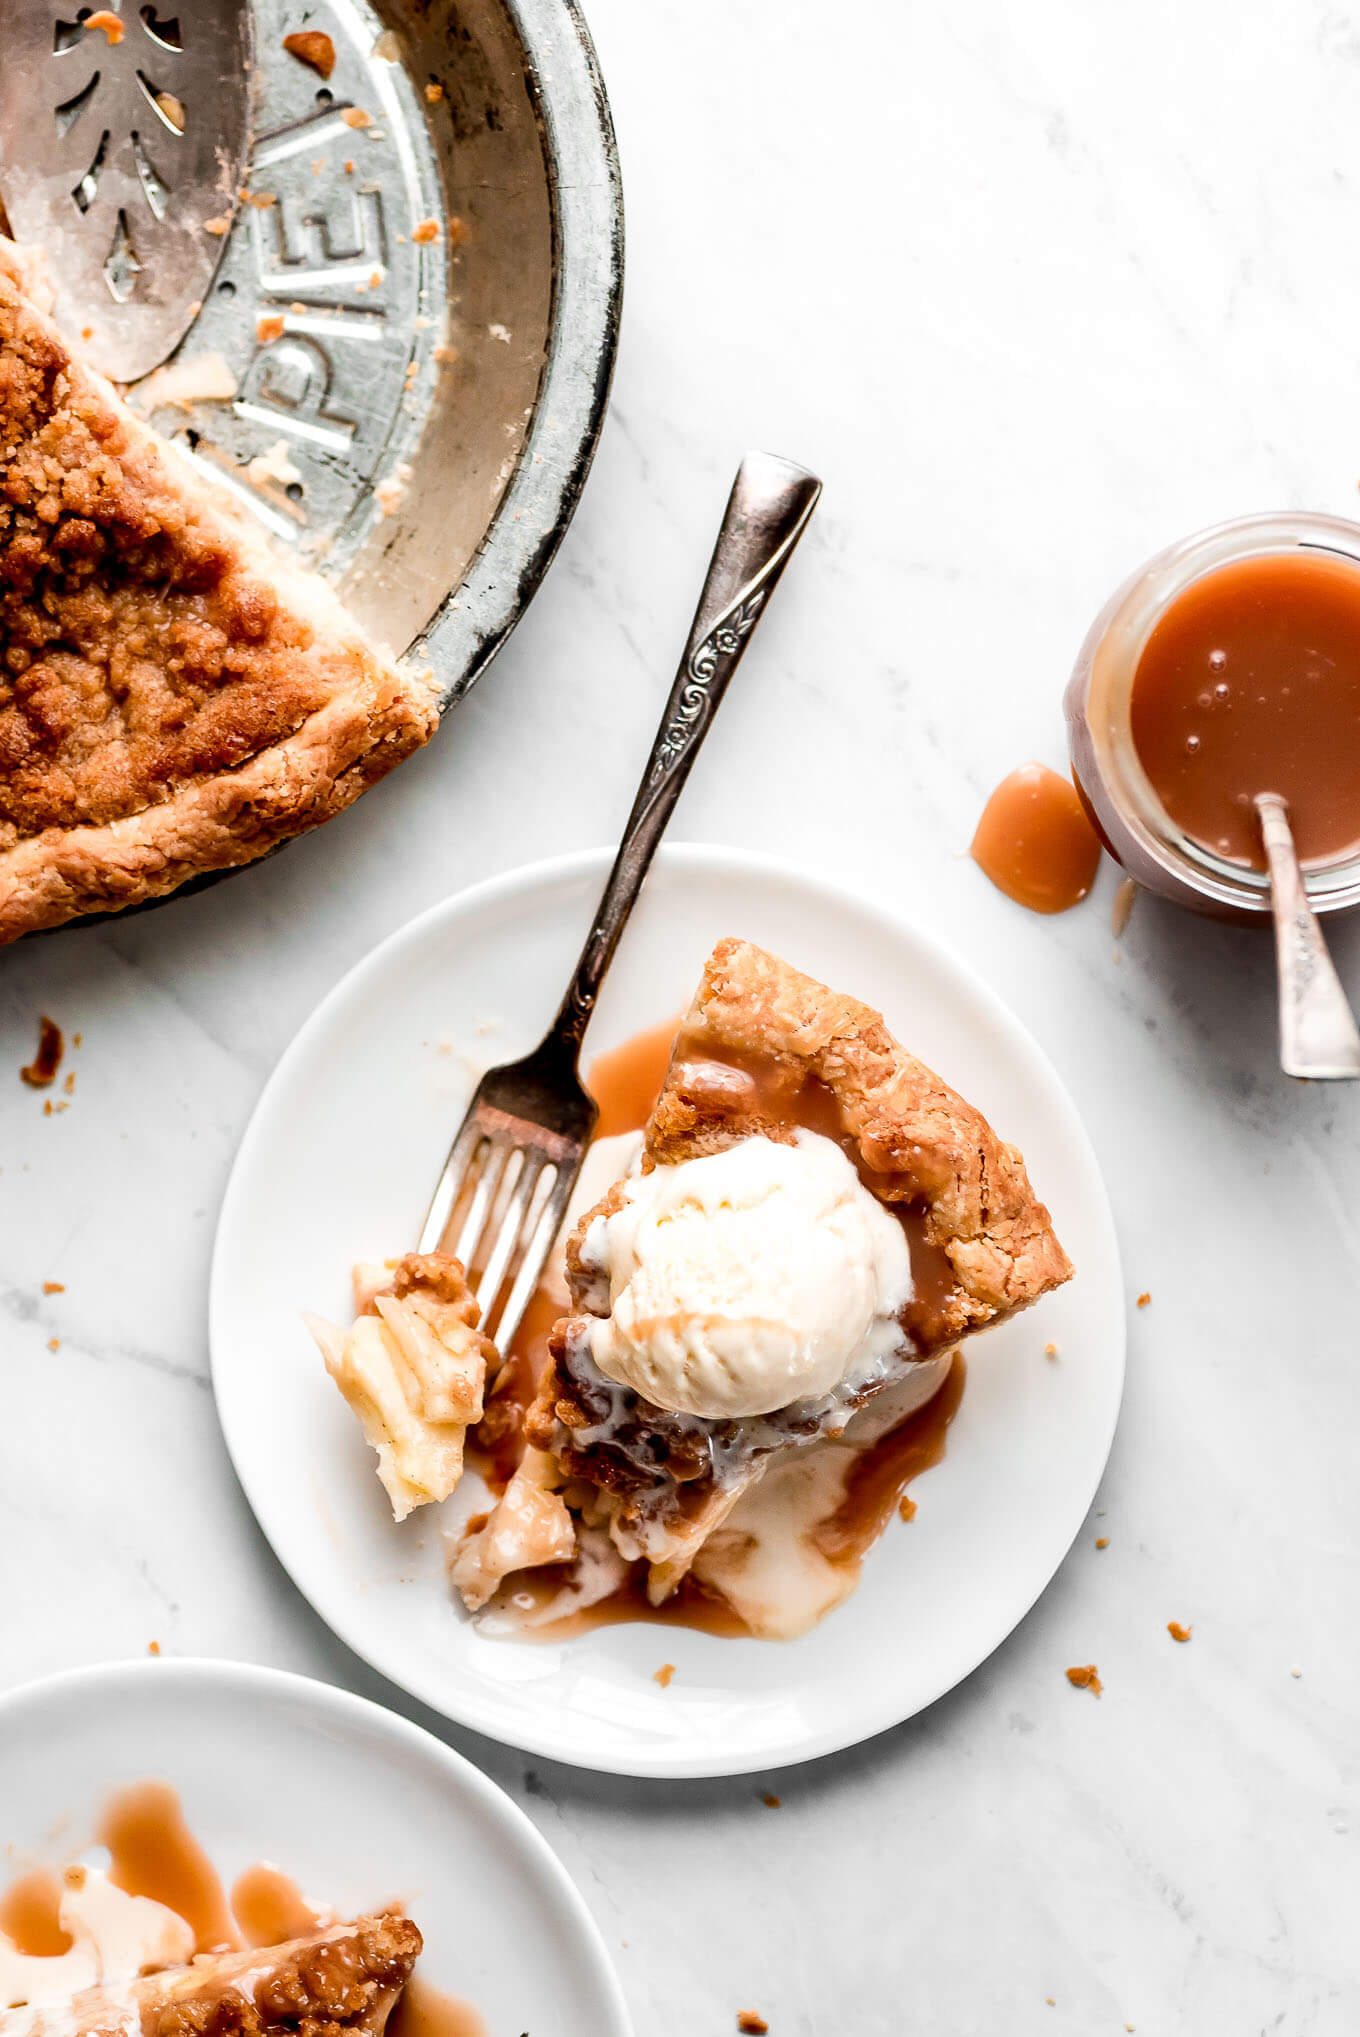 A slice of Apple Pie topped with ice cream and caramel sauce with a jar of caramel to the side.